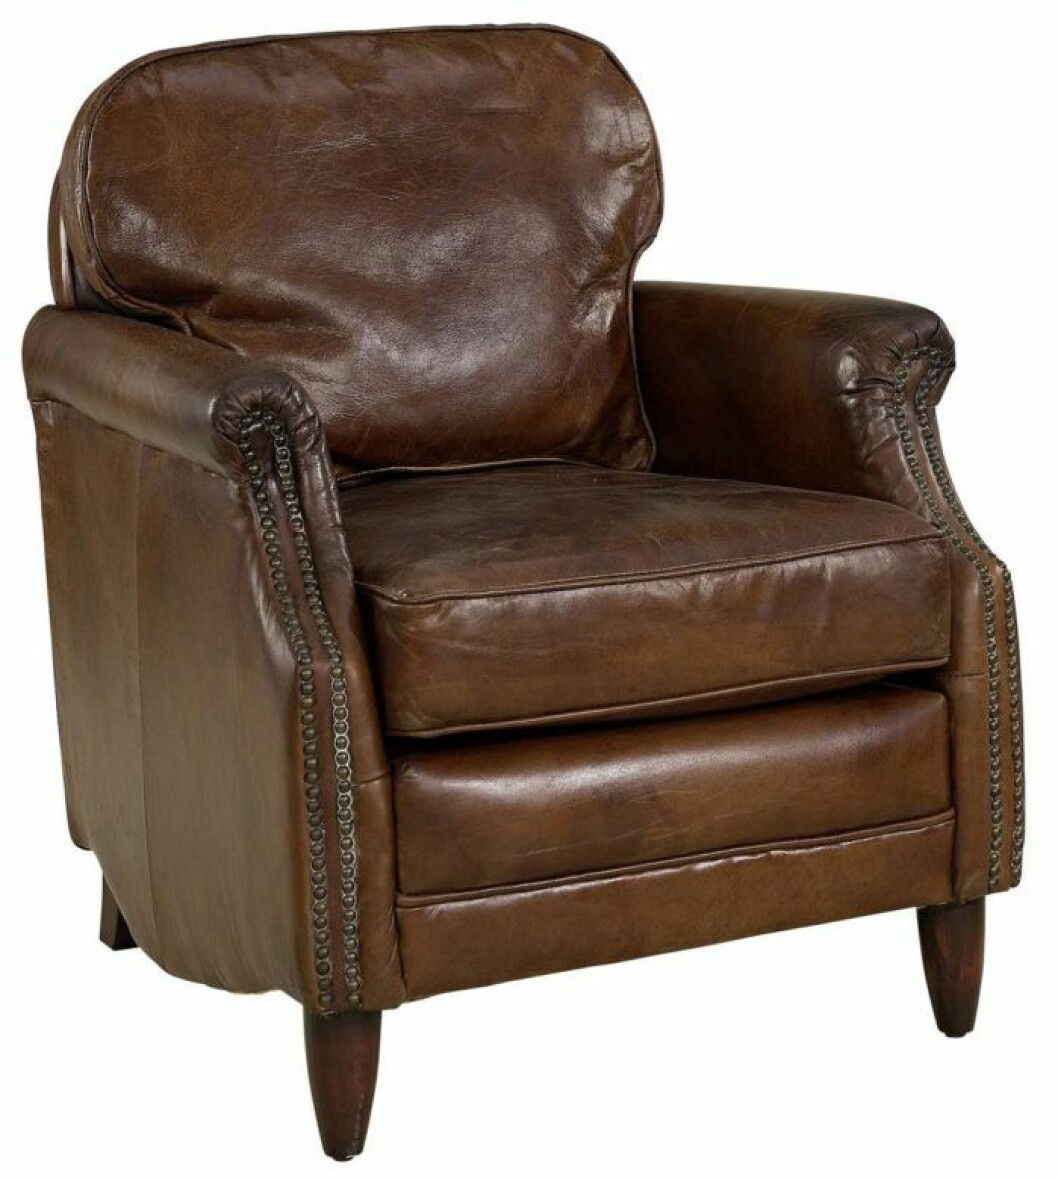 chicago_armchair_2